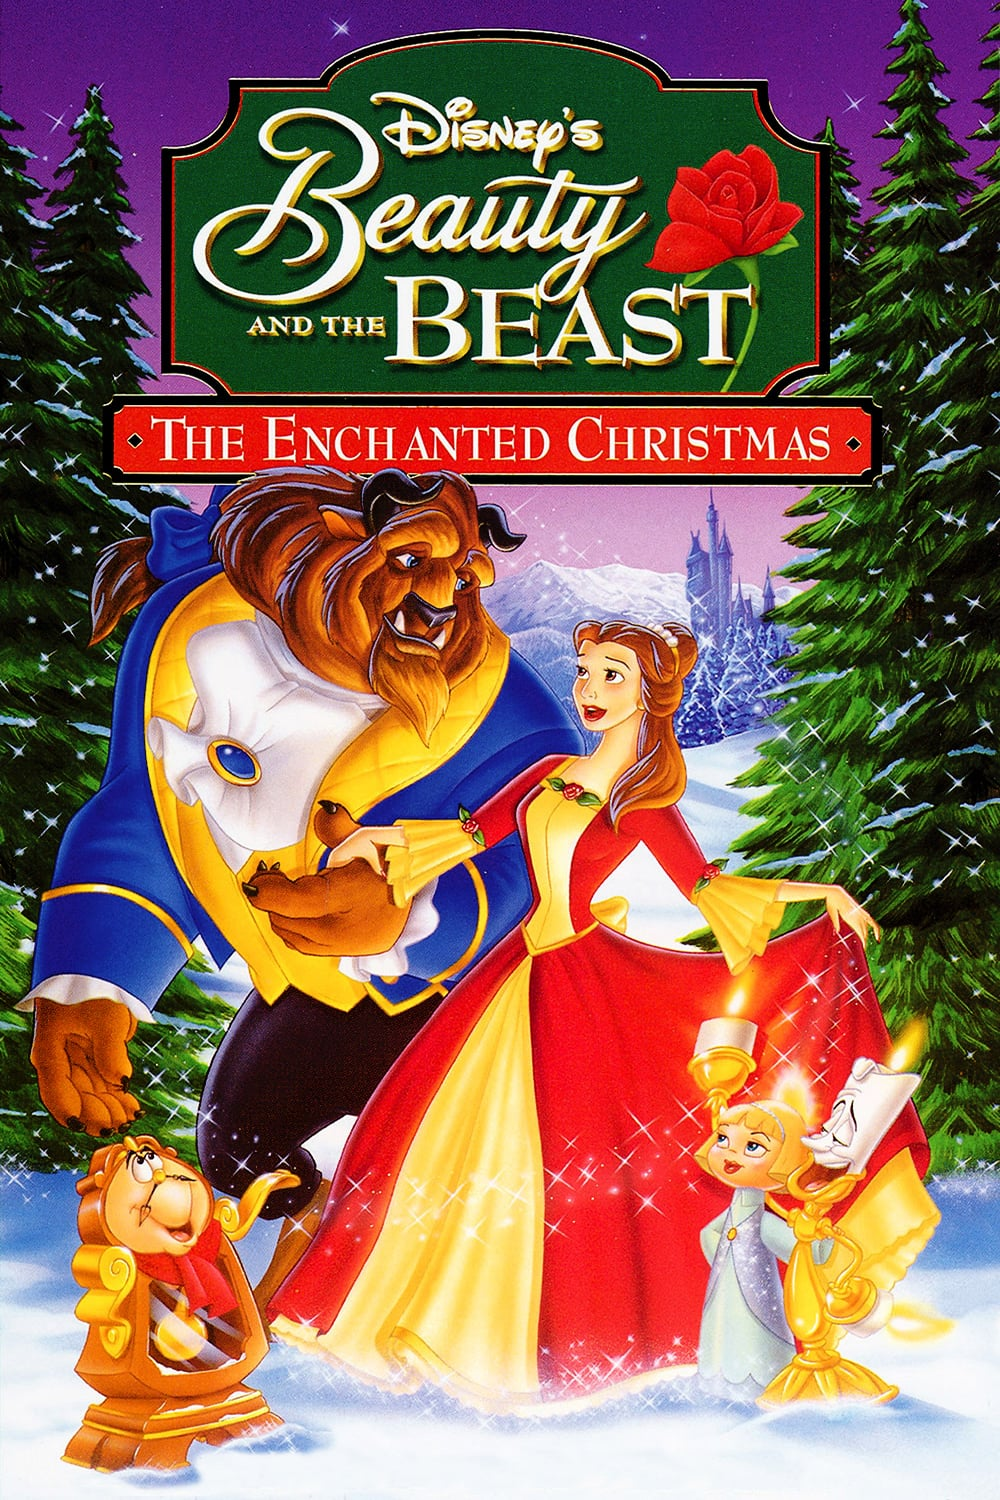 فيلم Beauty and the Beast: The Enchanted Christmas 1997 مدبلج للعربية